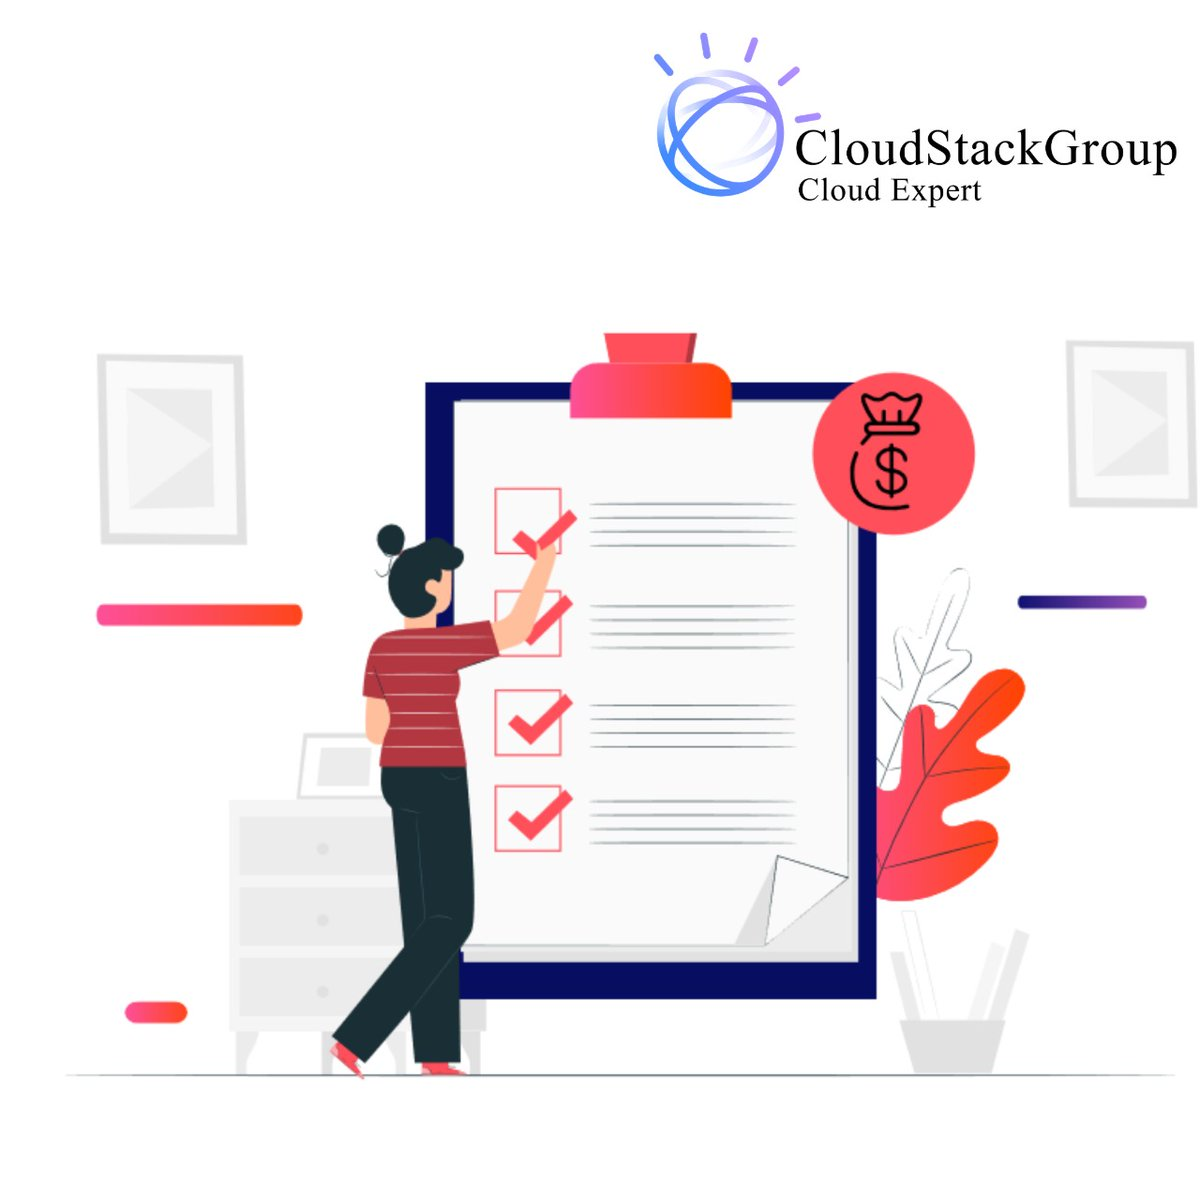 AWS has many flexible methods of keeping your expenditure to a minimum but the myriad of services and strategies could overwhelm you.  #CSG experts check out the list of essential strategies to see if you've got all your bases covered.  Visit https://t.co/nUdhs7G3dF for more info https://t.co/4a1vSNwmQQ